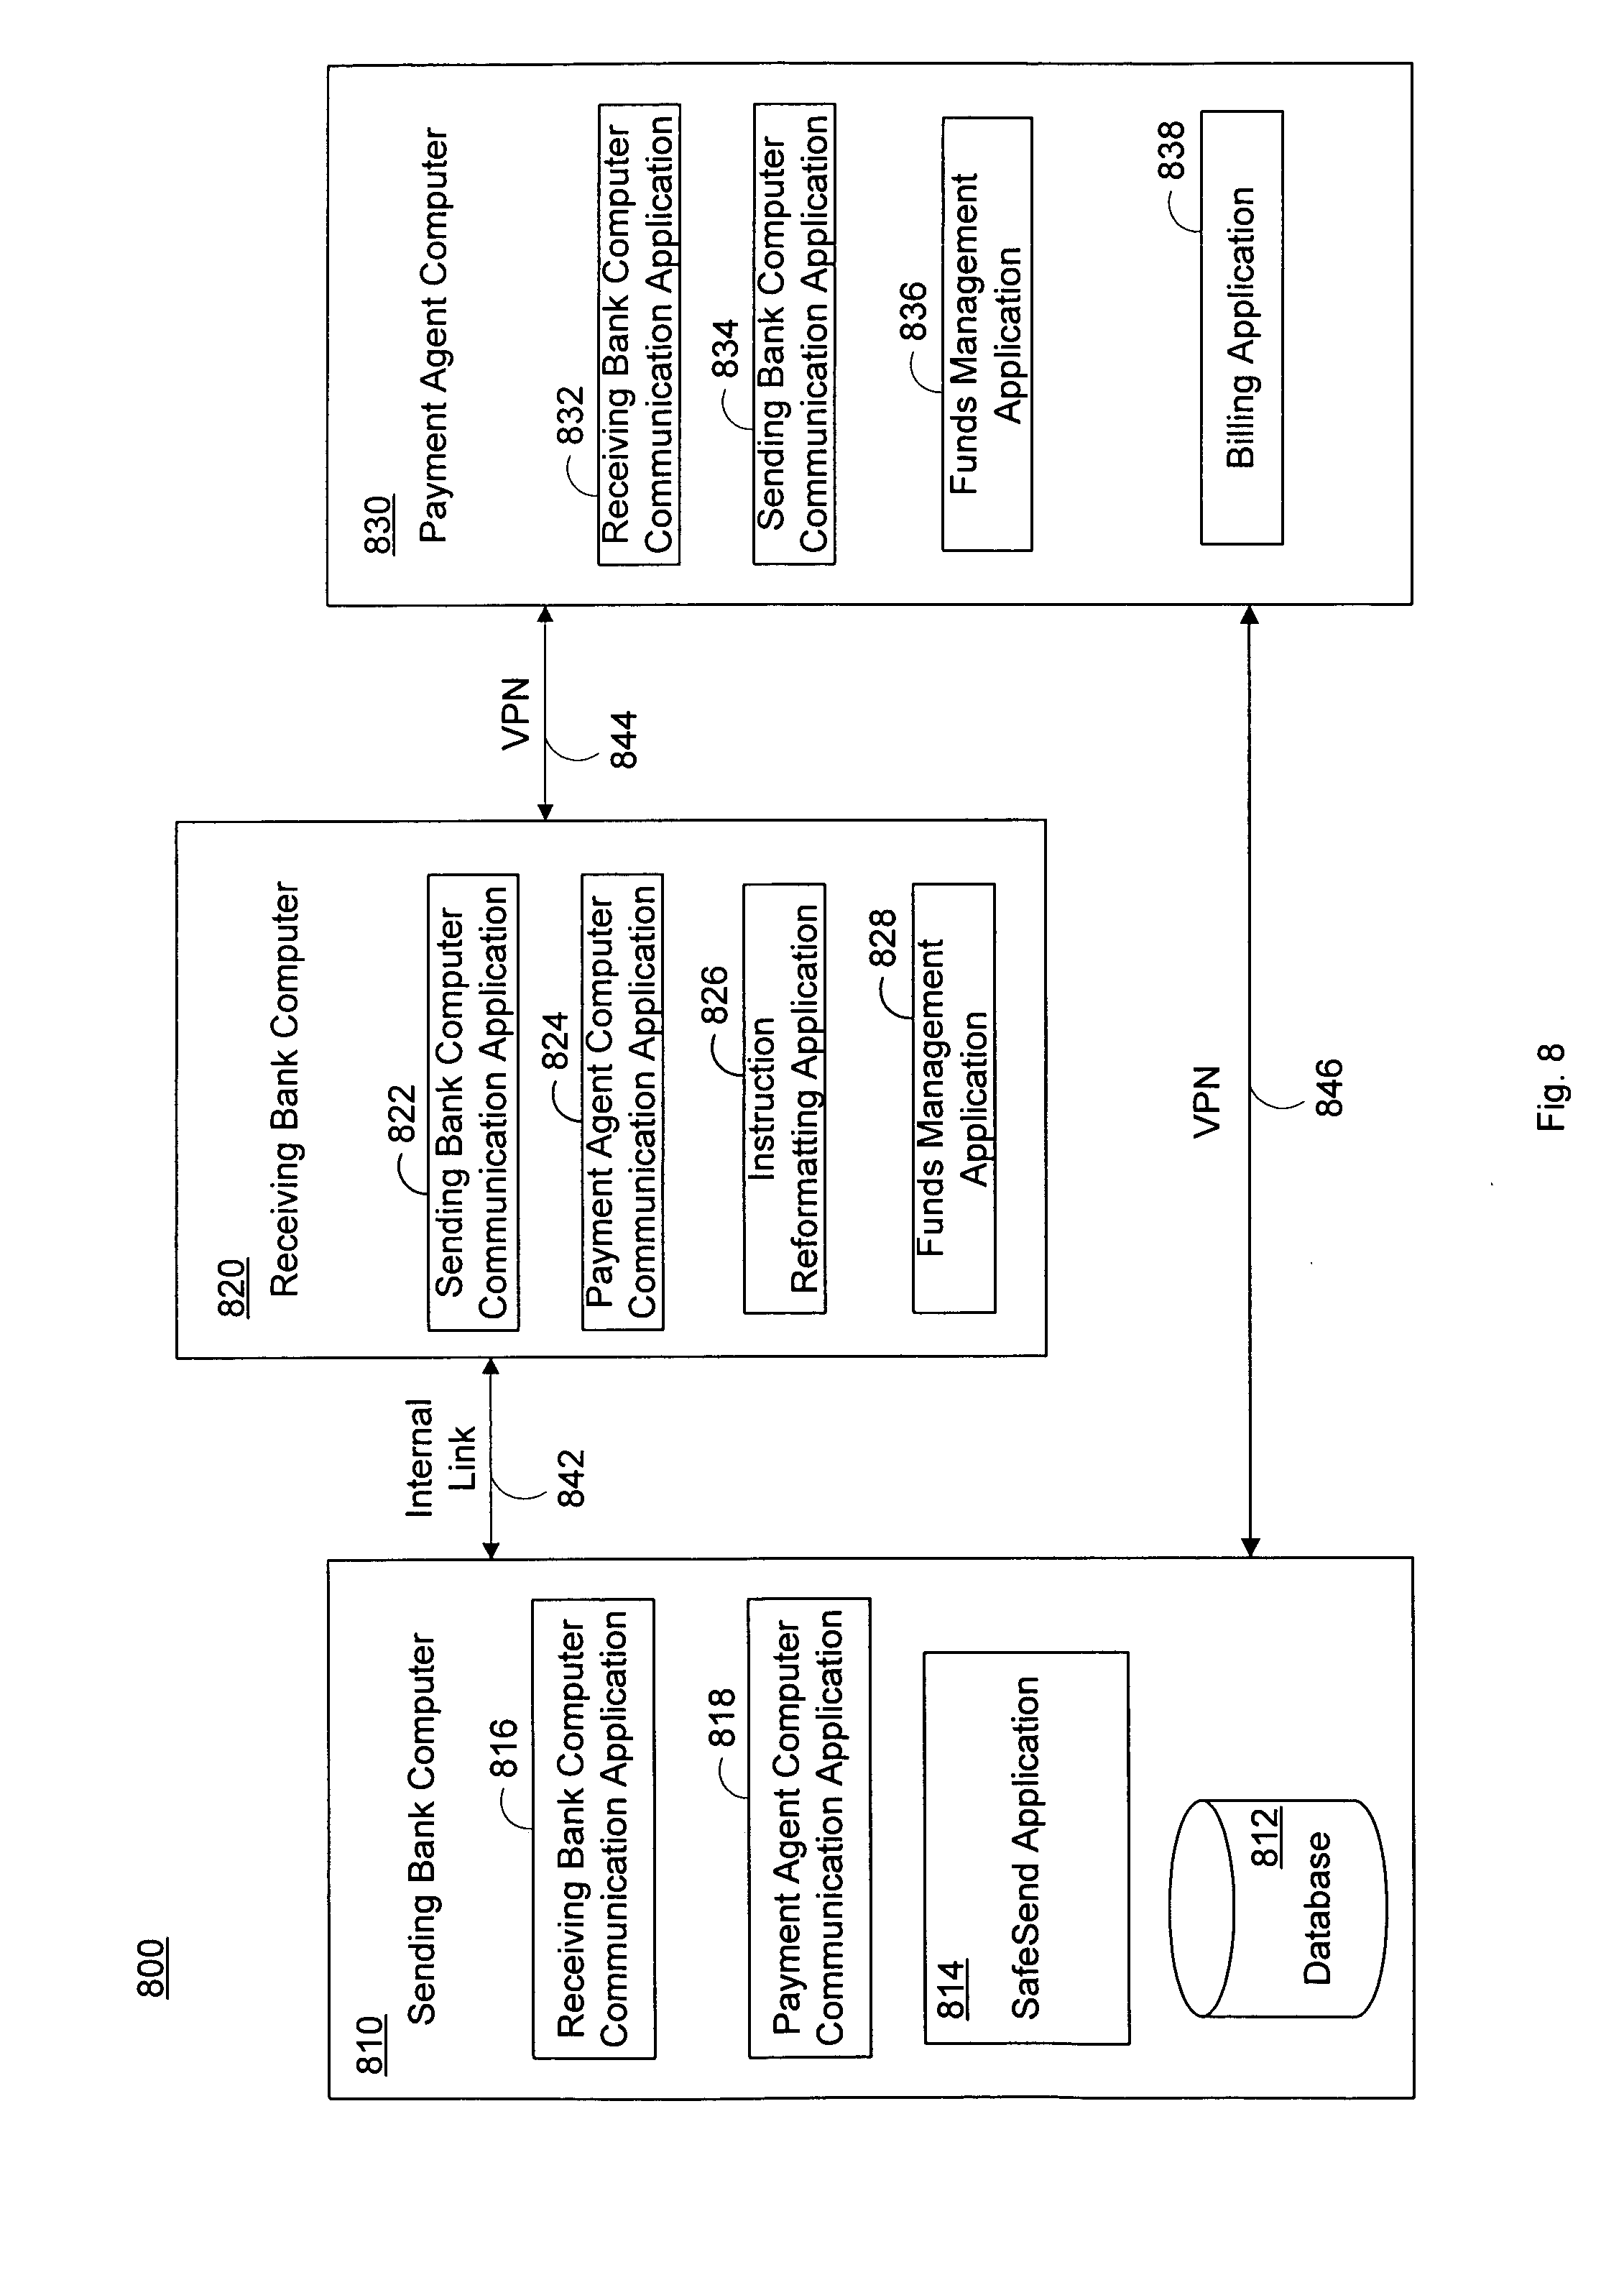 Pending Invoice Payment Request Letter Word Patent Us  Method And System For Cash Remittances  Sample Of Invoice For Payment with Warehouse Receipt Pdf Patent Drawing How To Write Up A Receipt